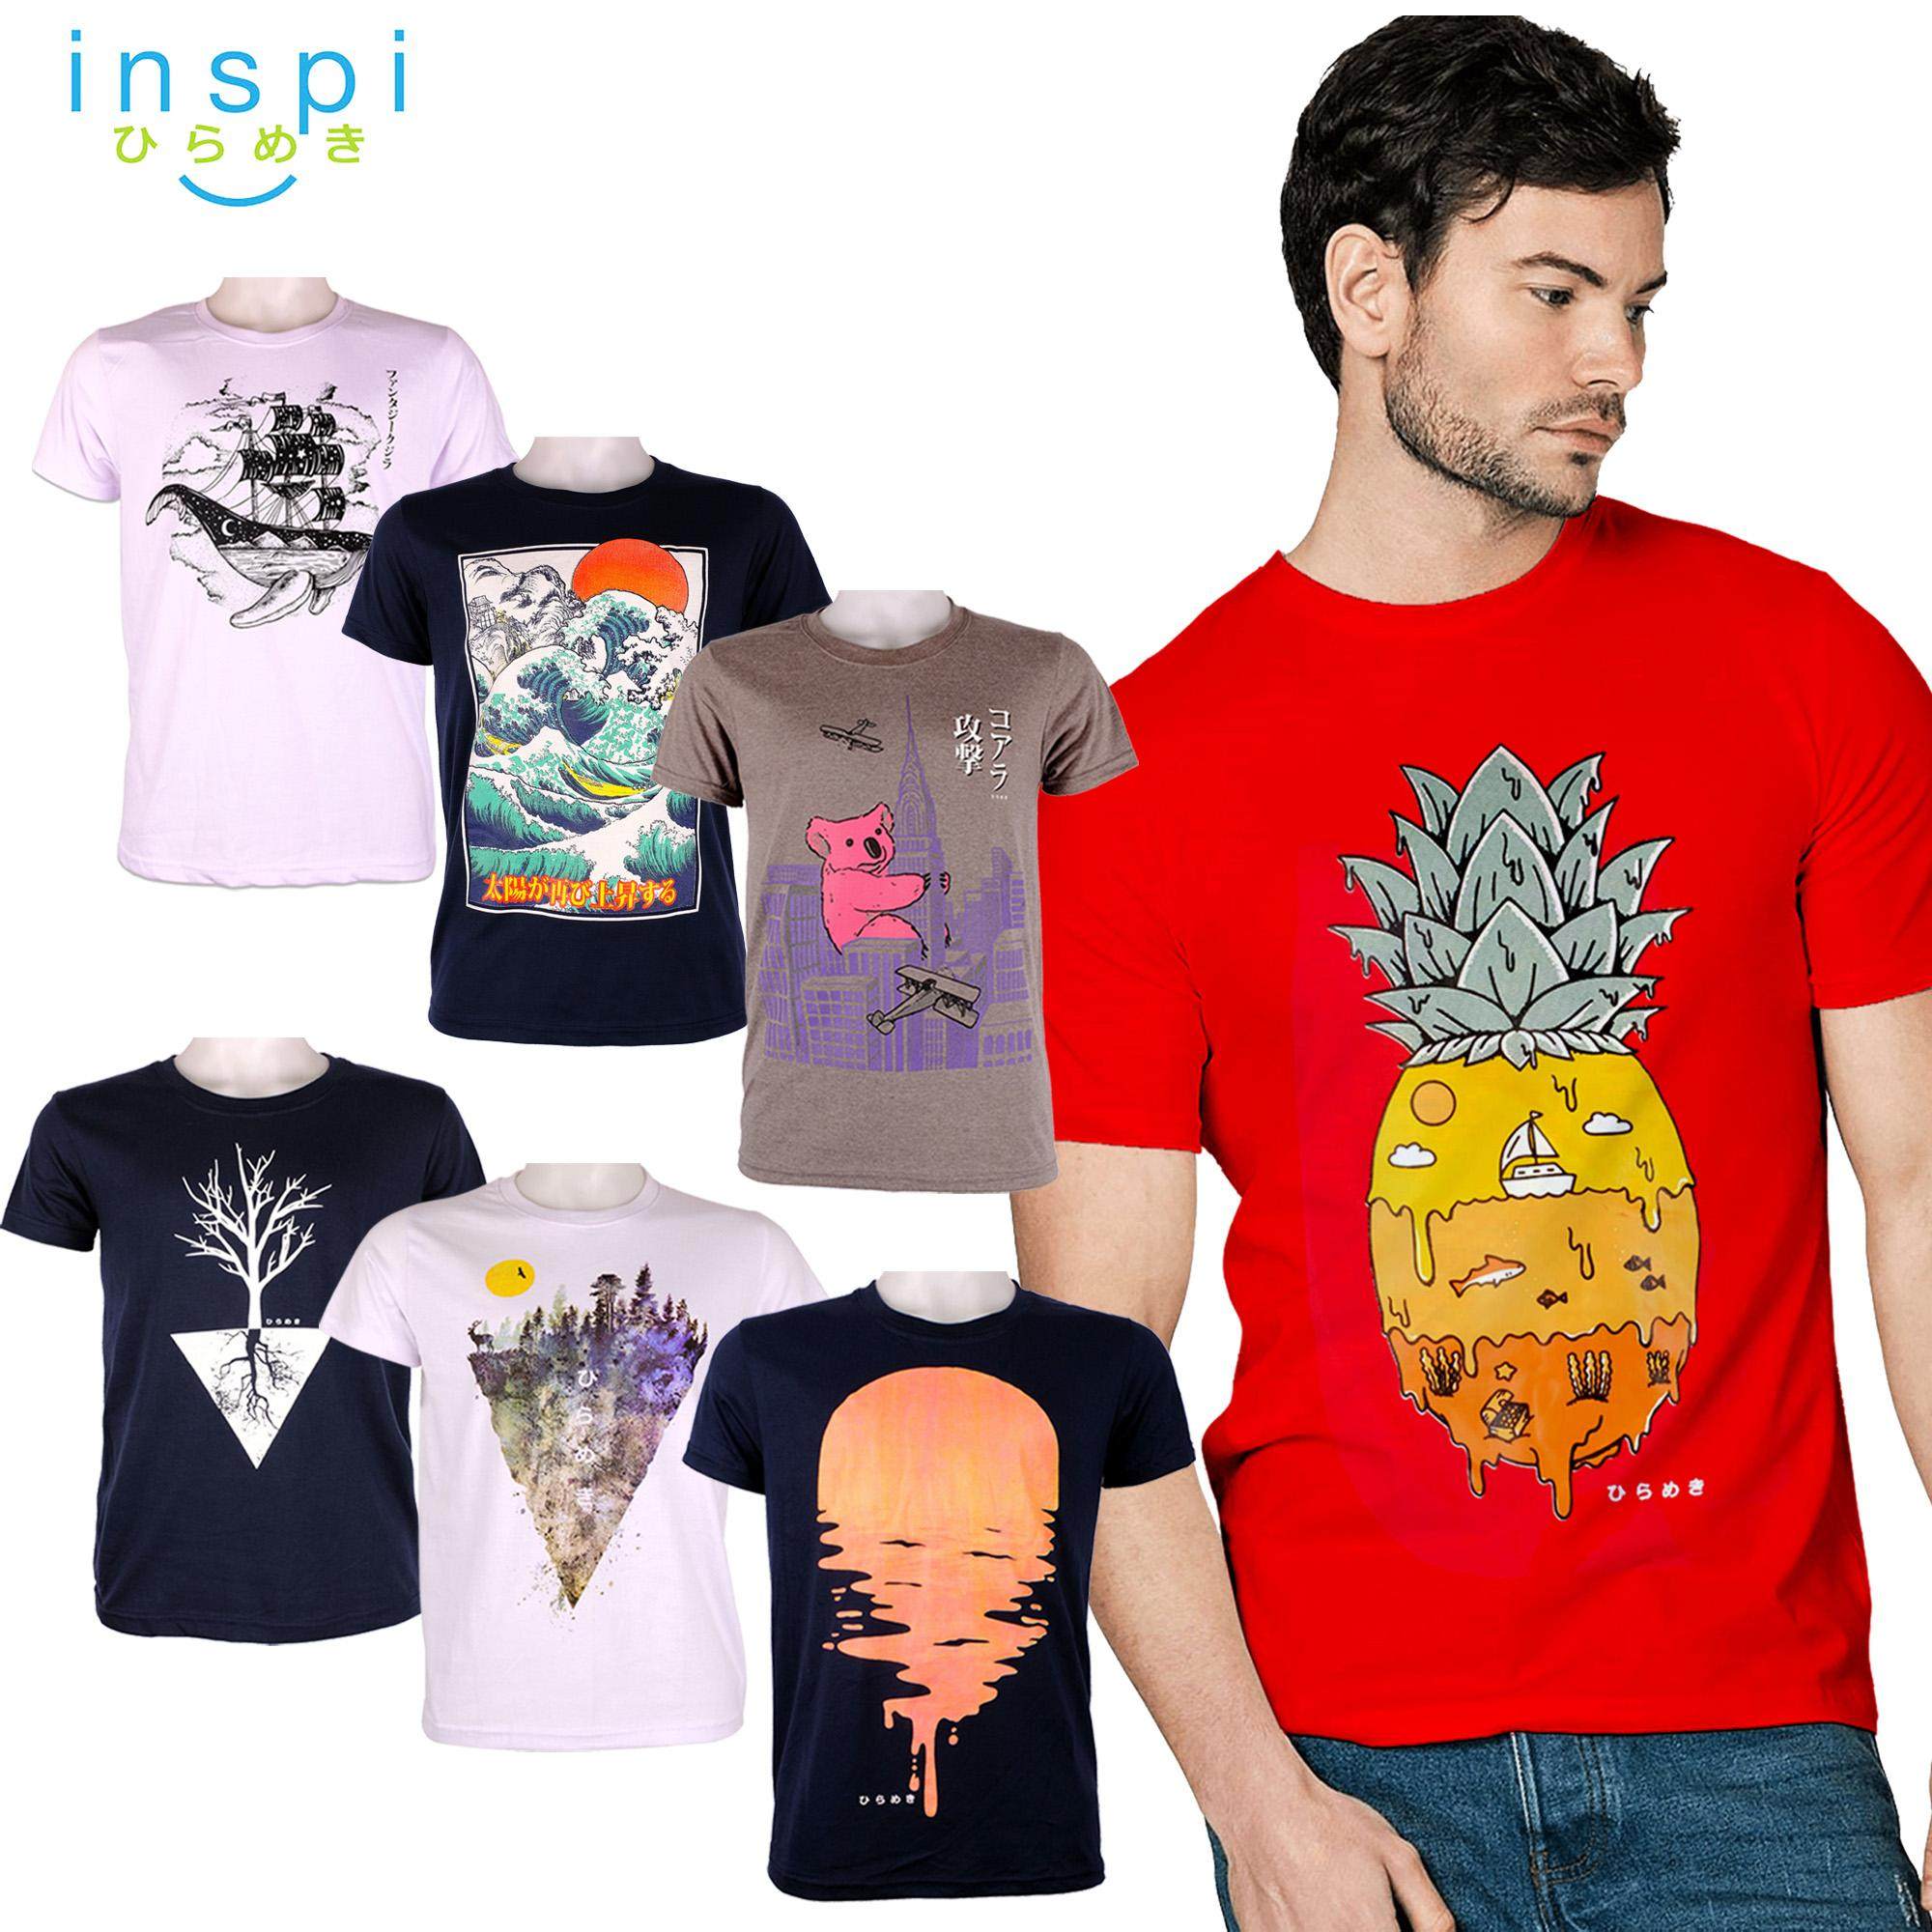 bf60356a33f INSPI Tees Nature Collection tshirt printed graphic tee Mens t shirt shirts  for men tshirts sale